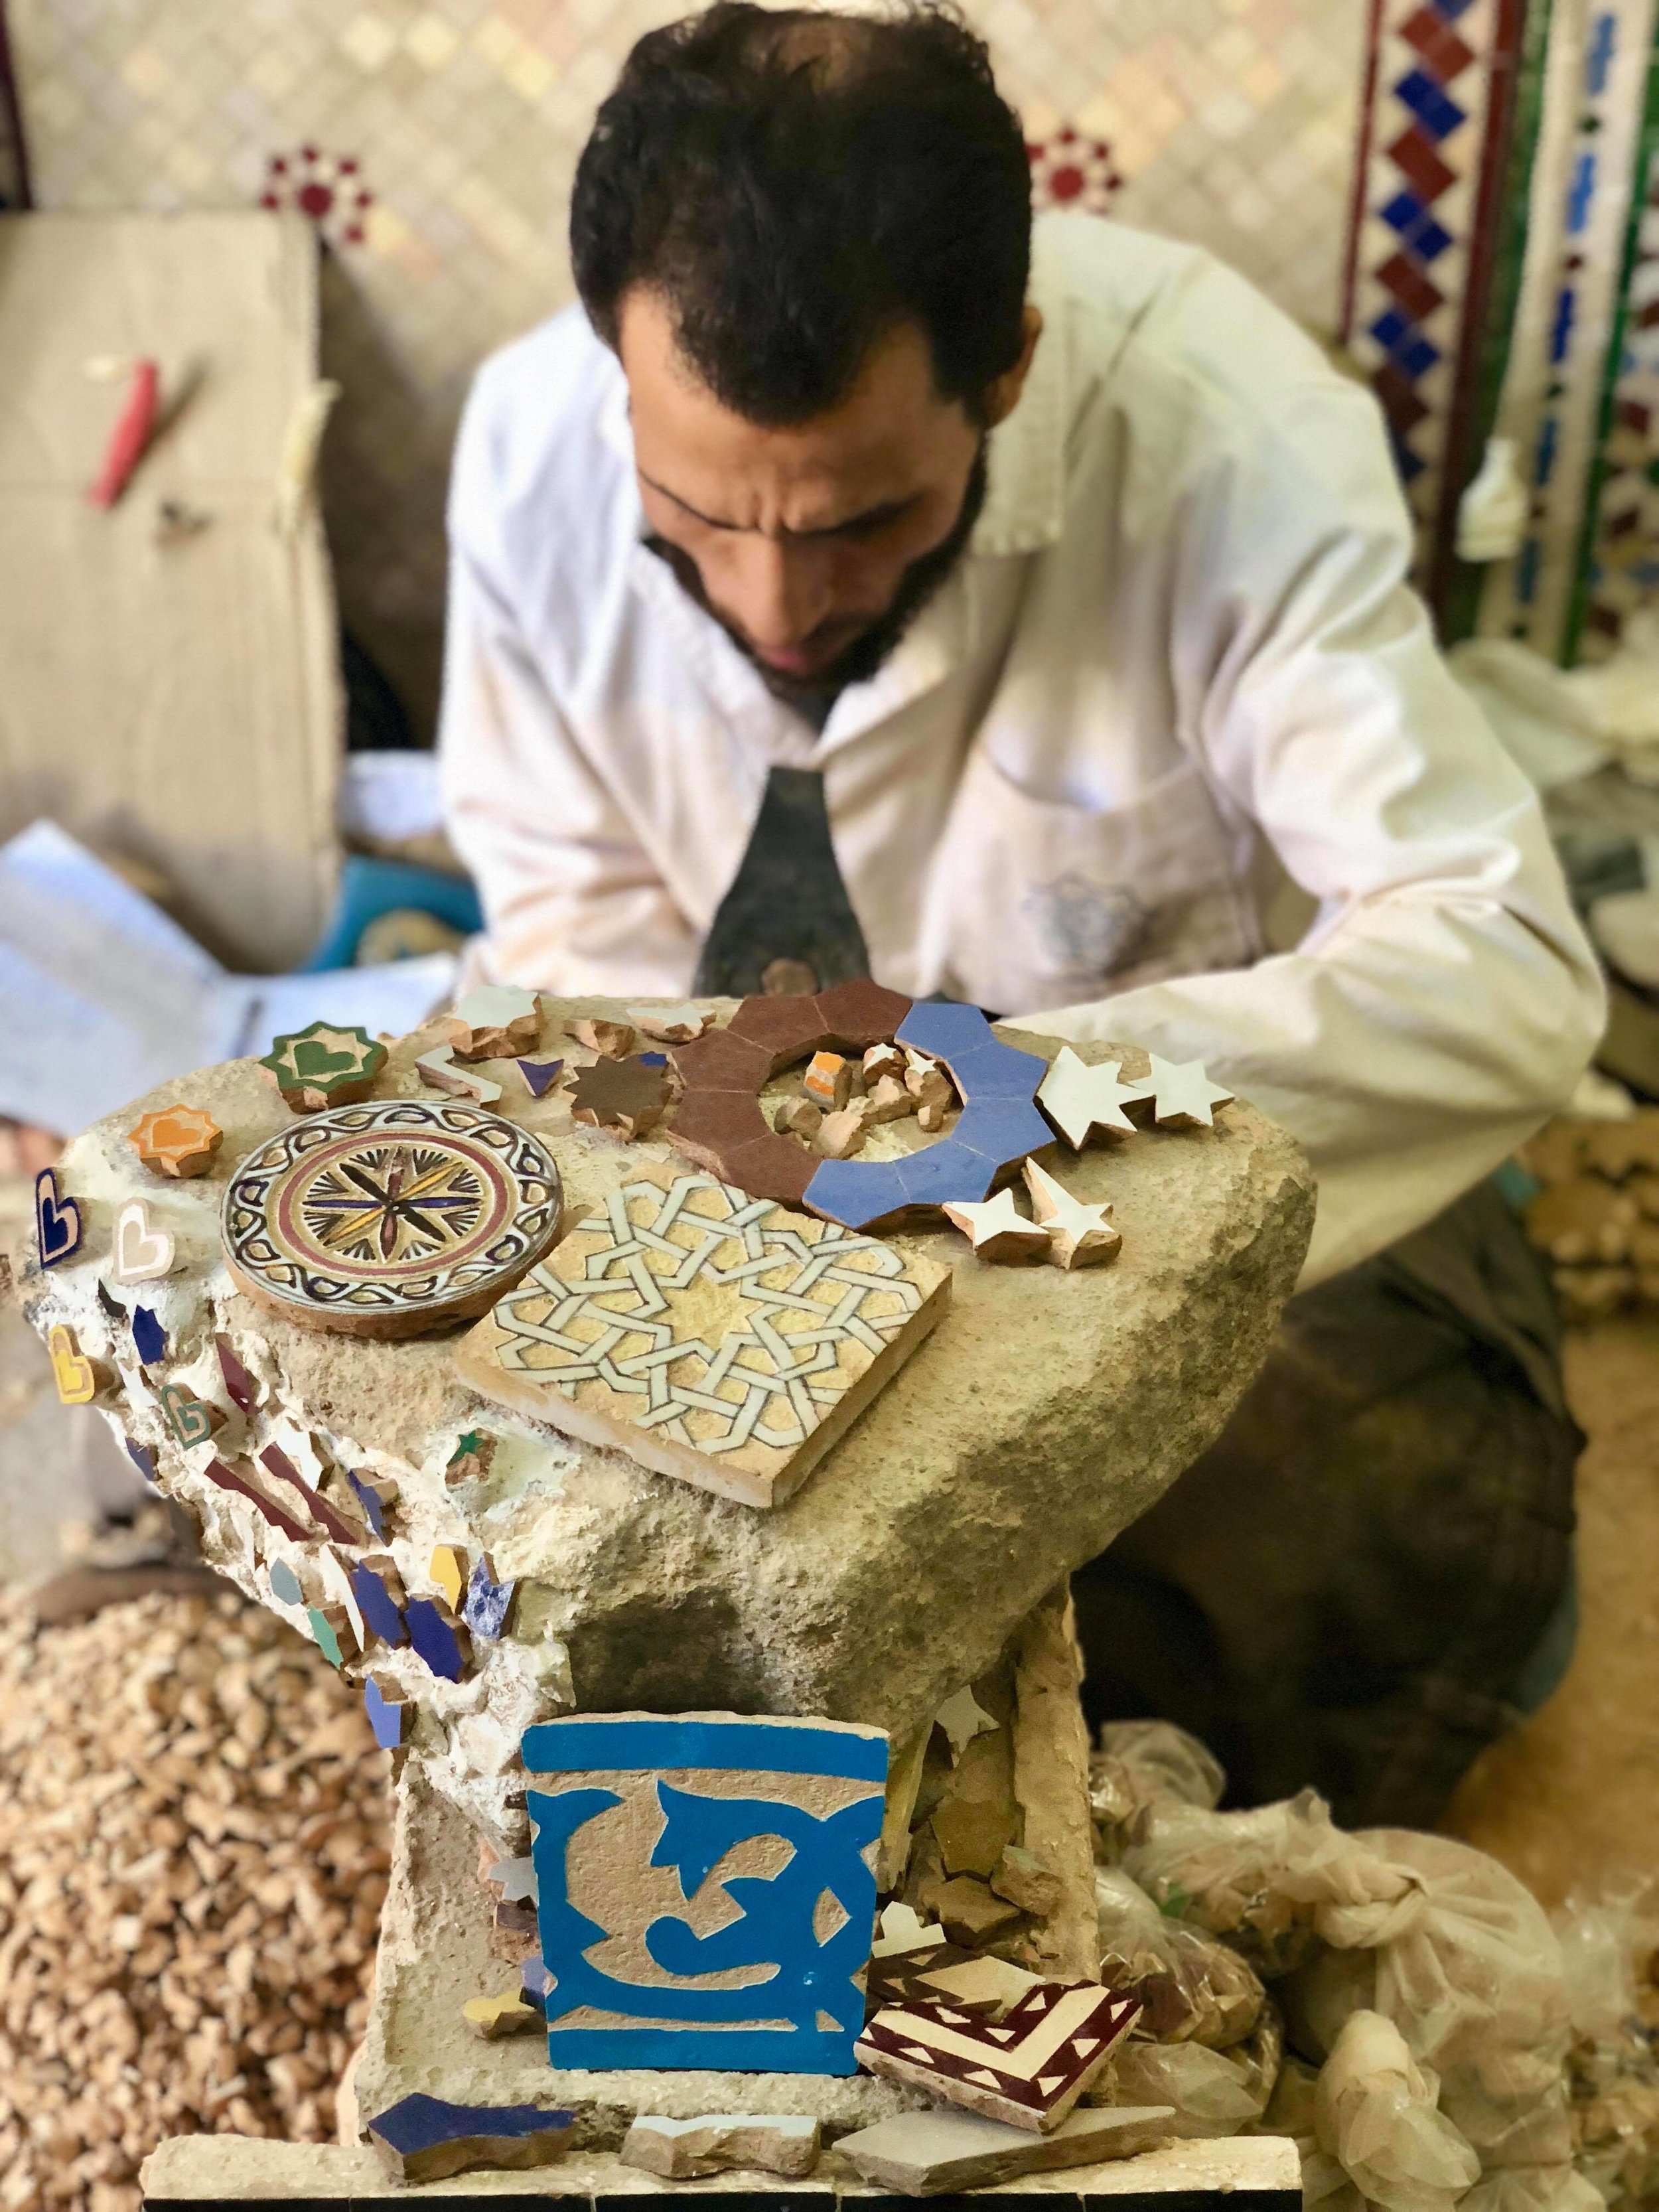 Mosaic pieces are then laid with their glazed and colored sides facing down, requiring the artisan laying out the design to memorize the mosaic's layout and be able to assemble the pieces on its flip-side.